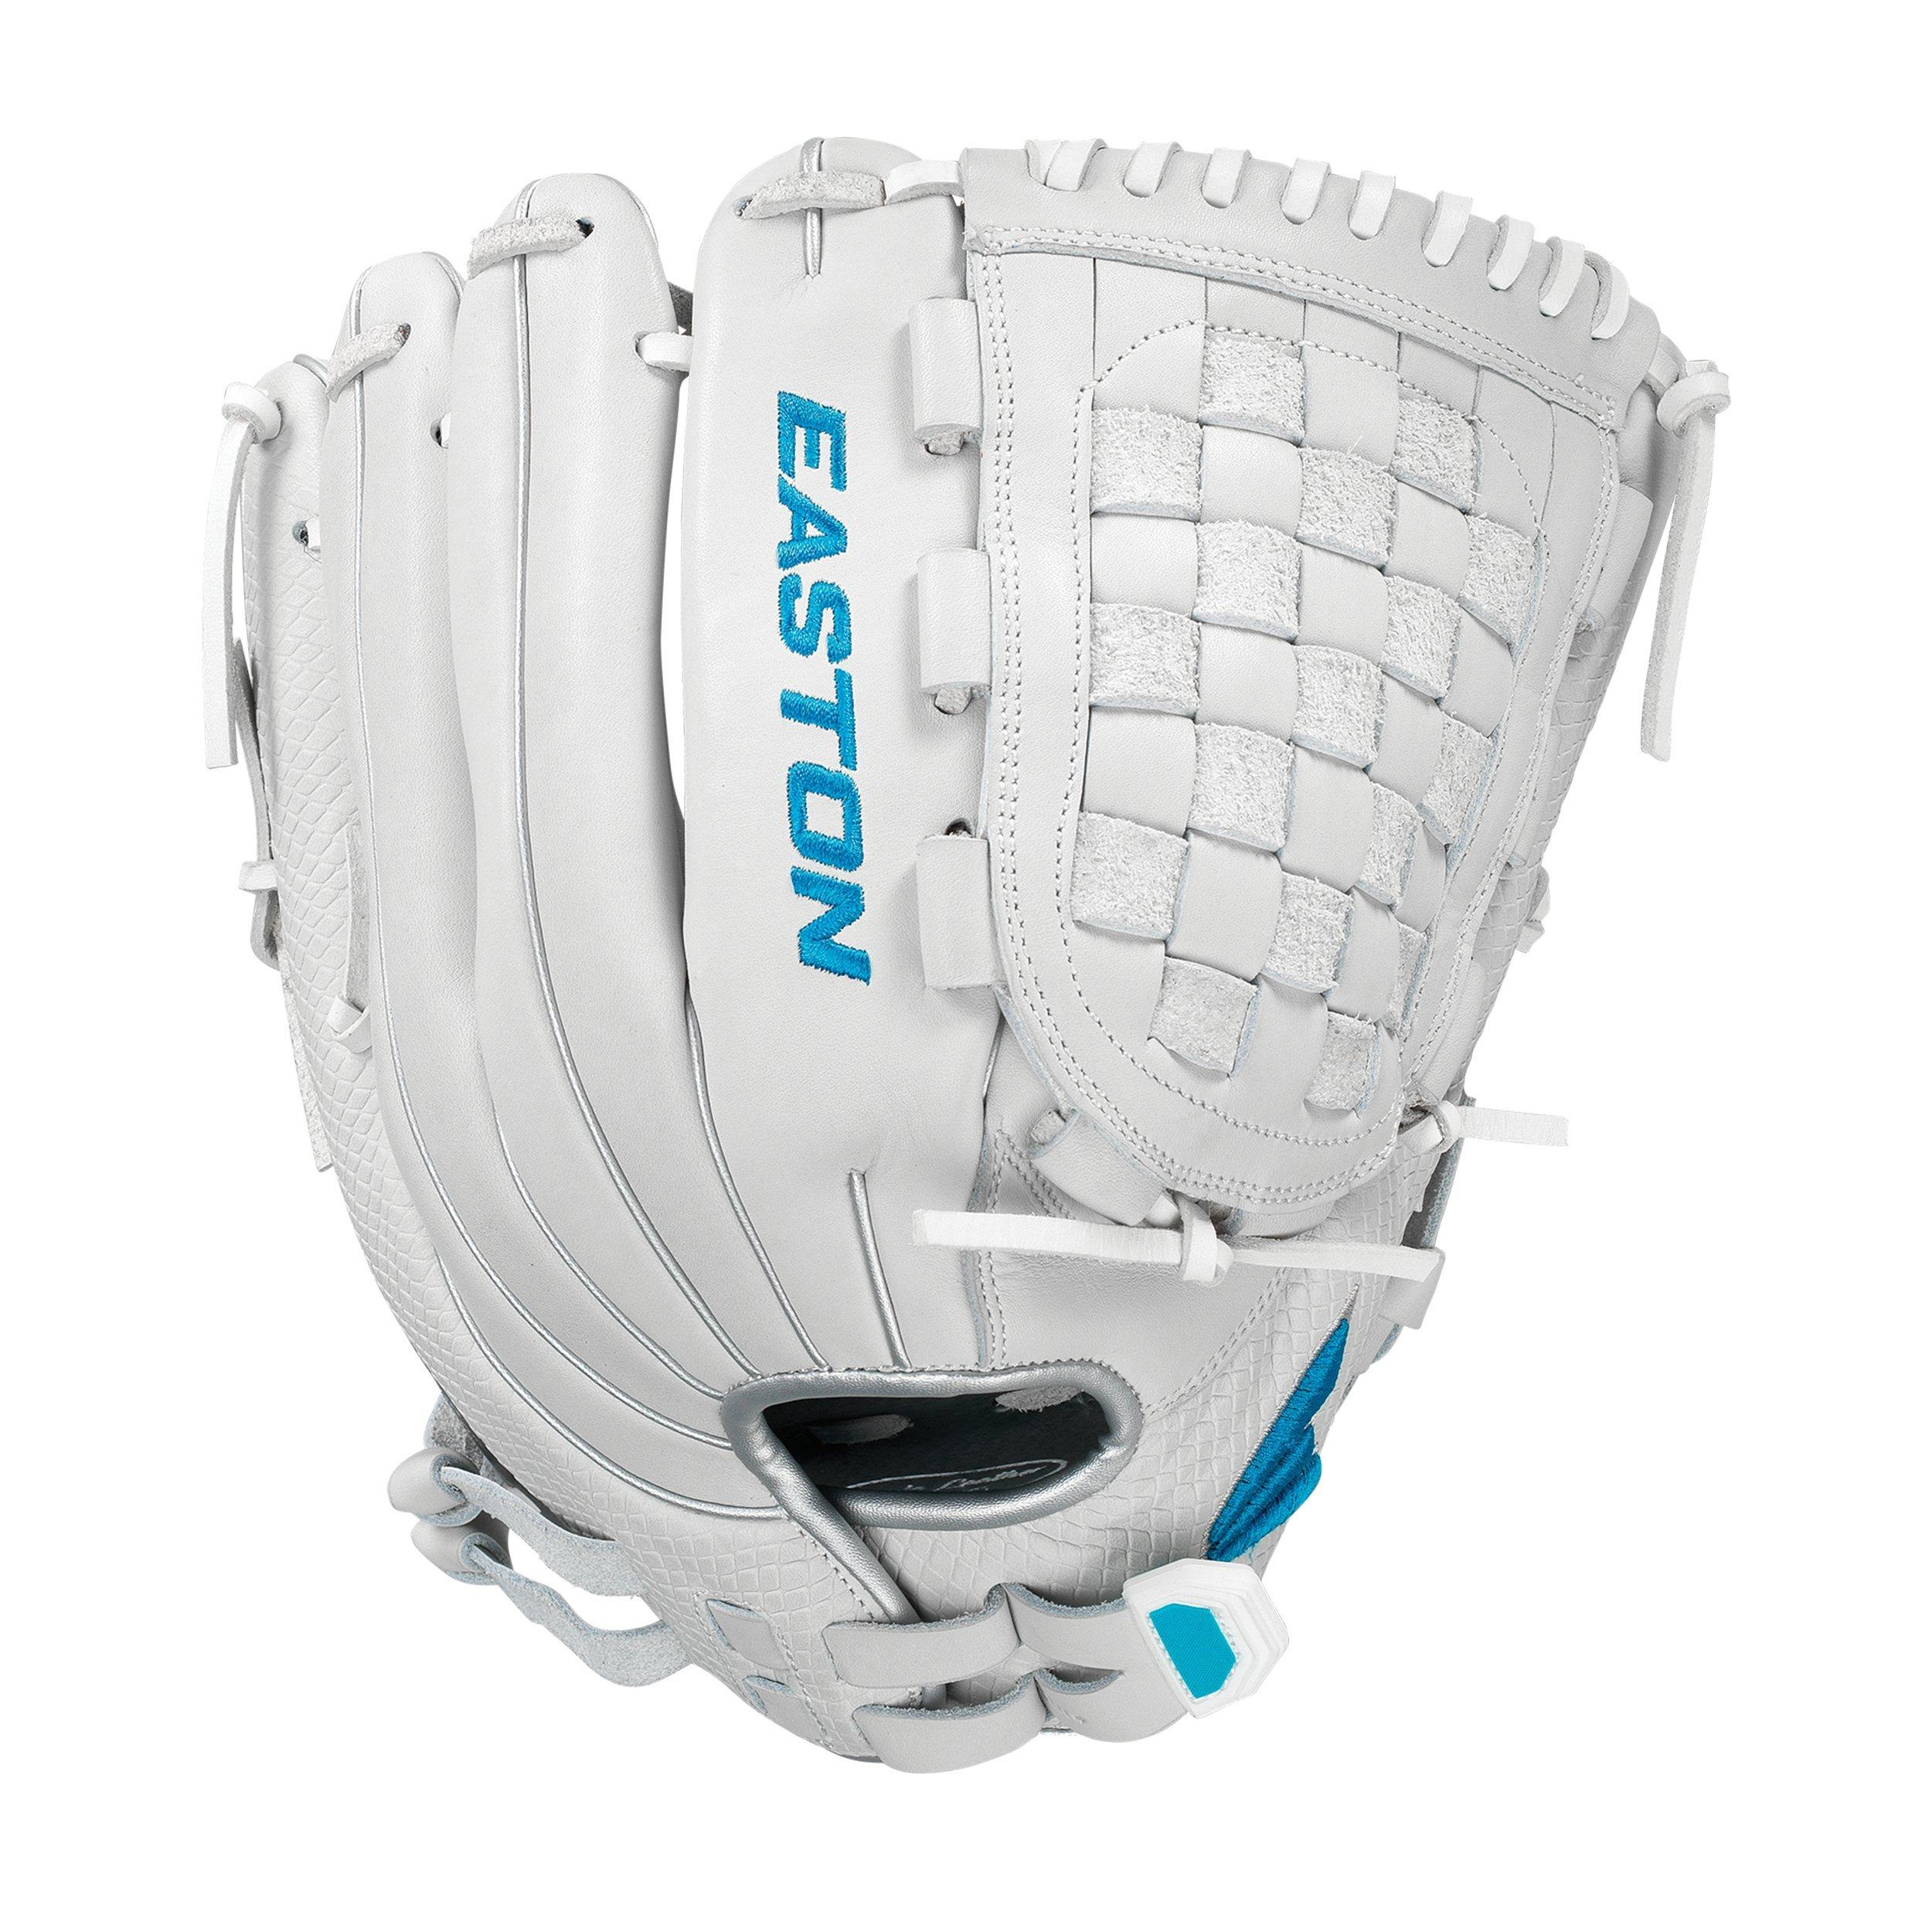 easton-ghost-tournament-elite-fastpitch-softball-glove-12-5-inch-right-hand-throw GTEFP125-RightHandThrow   <span>The Ghost Tournament Elite Fastpitch Series gloves are built with the